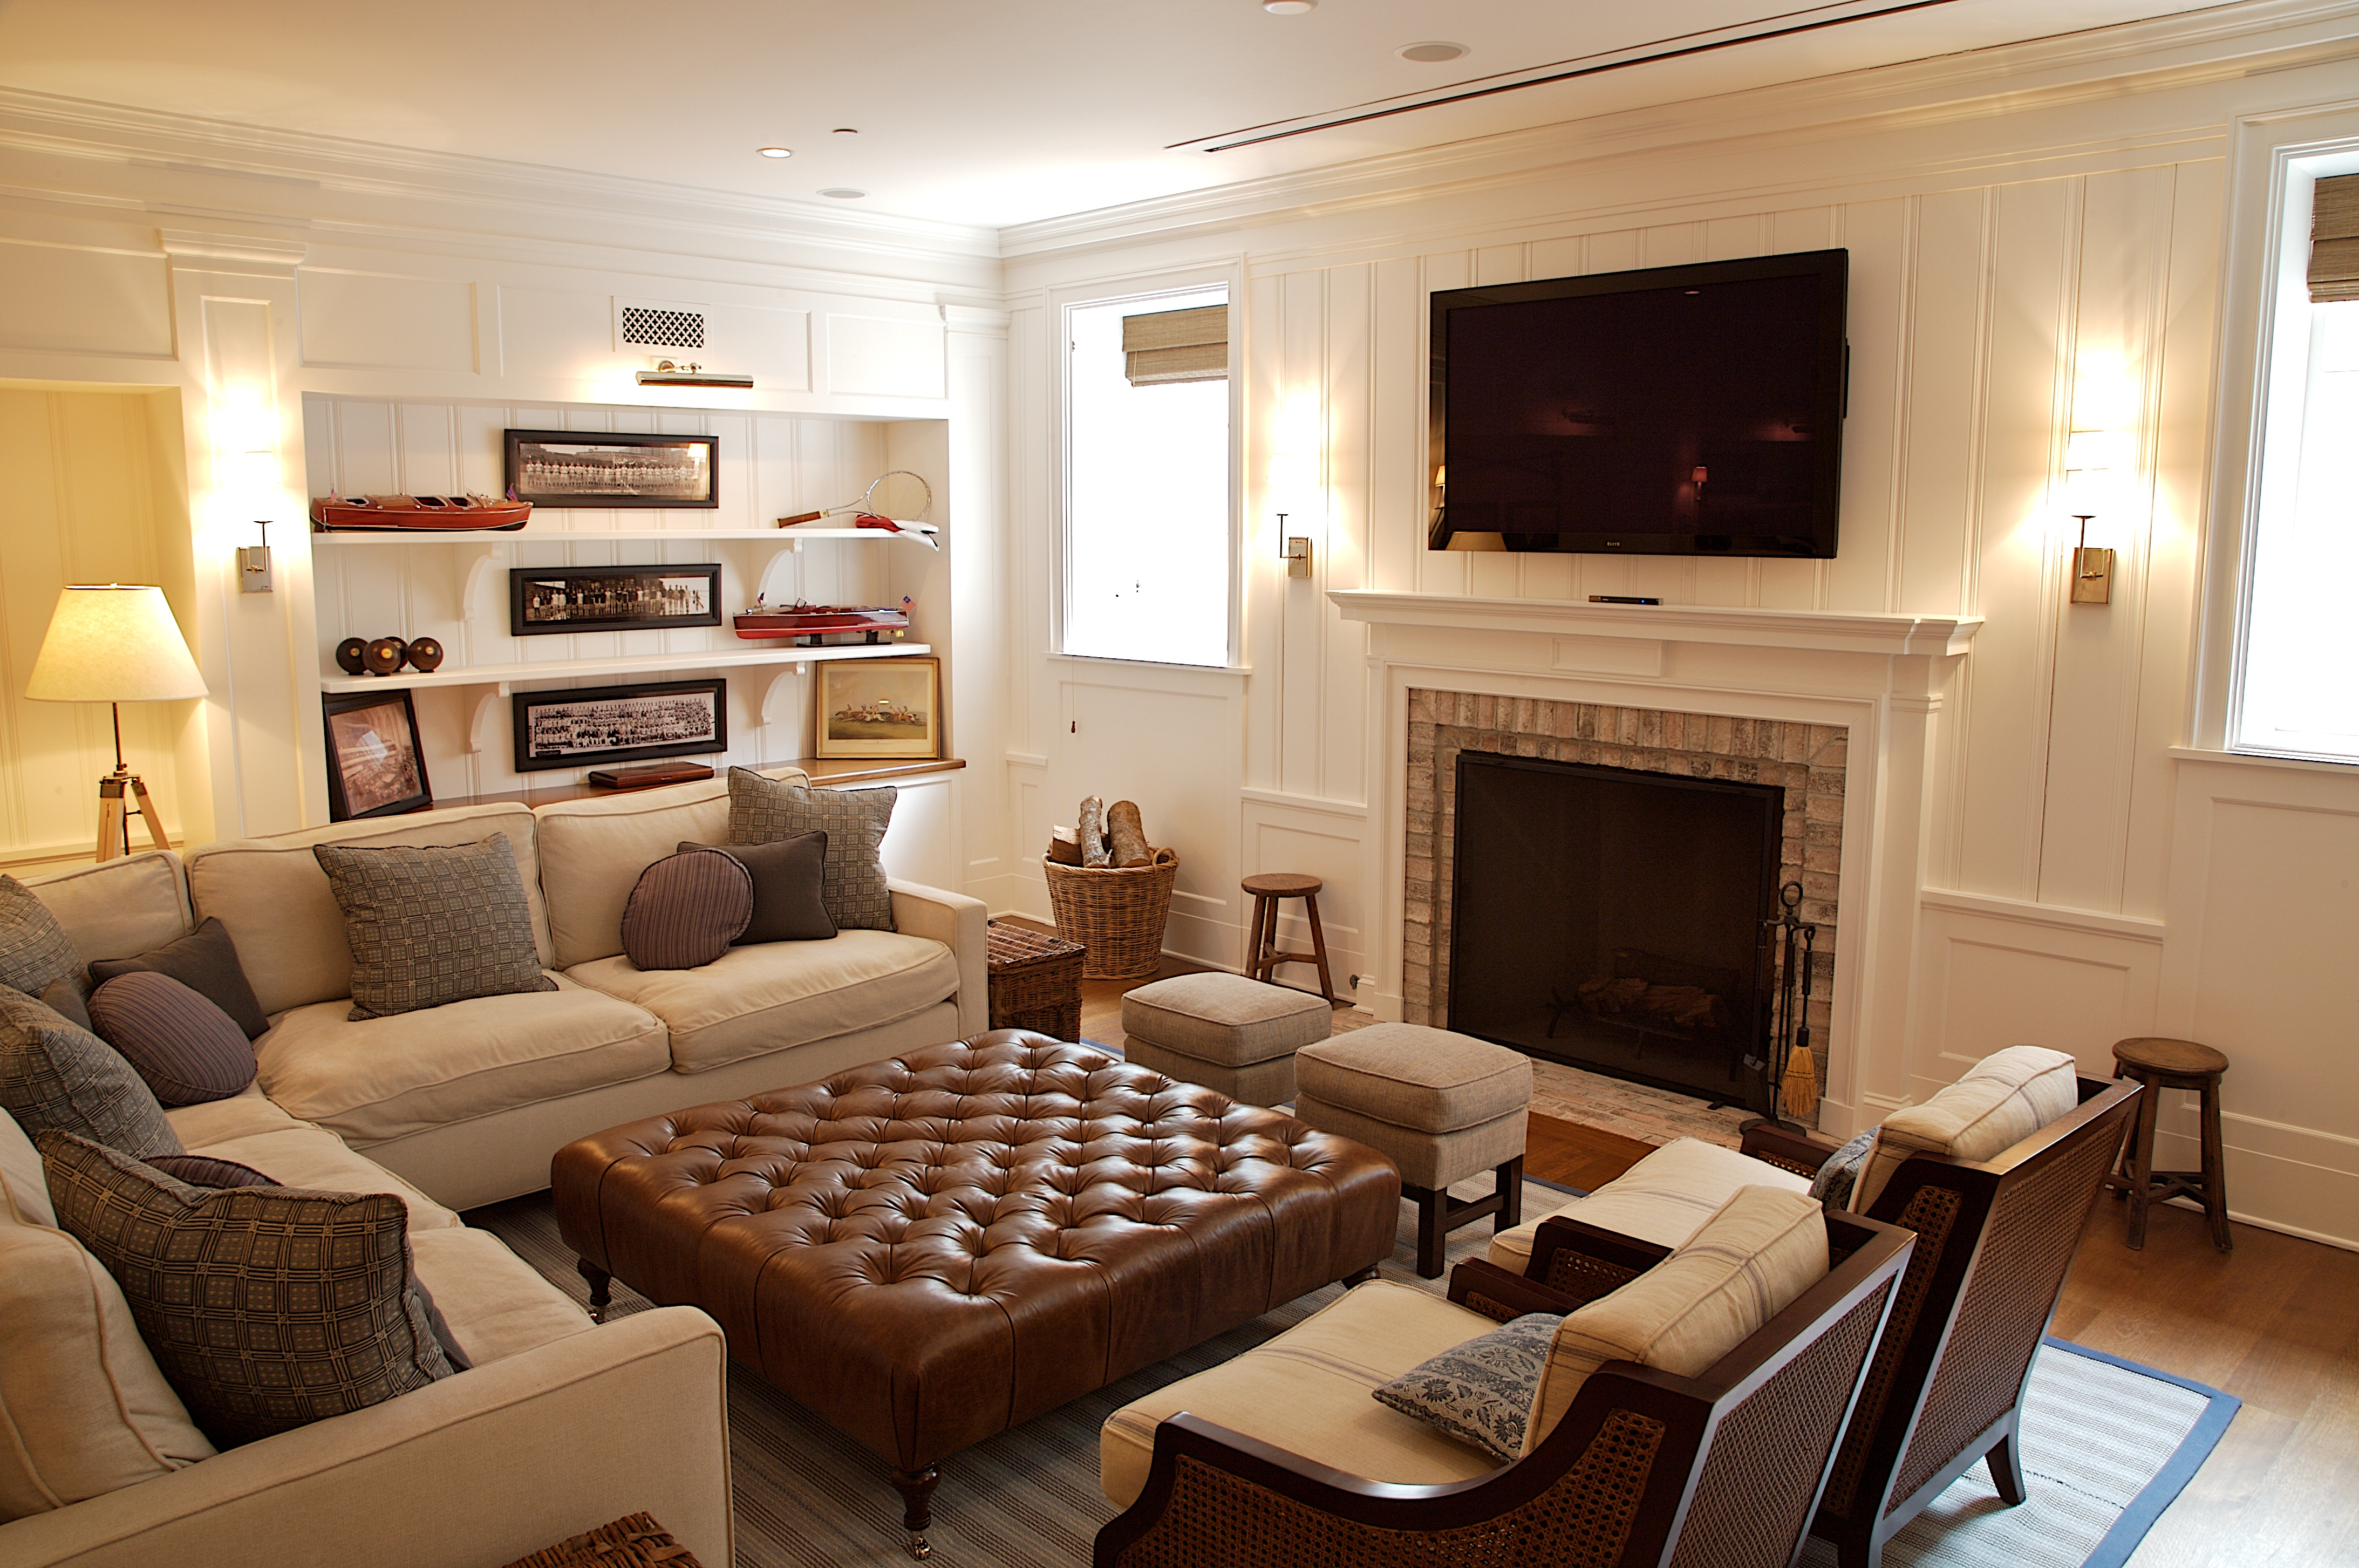 House wedding preppy vardagsrum for Living room ideas with sectionals and fireplace